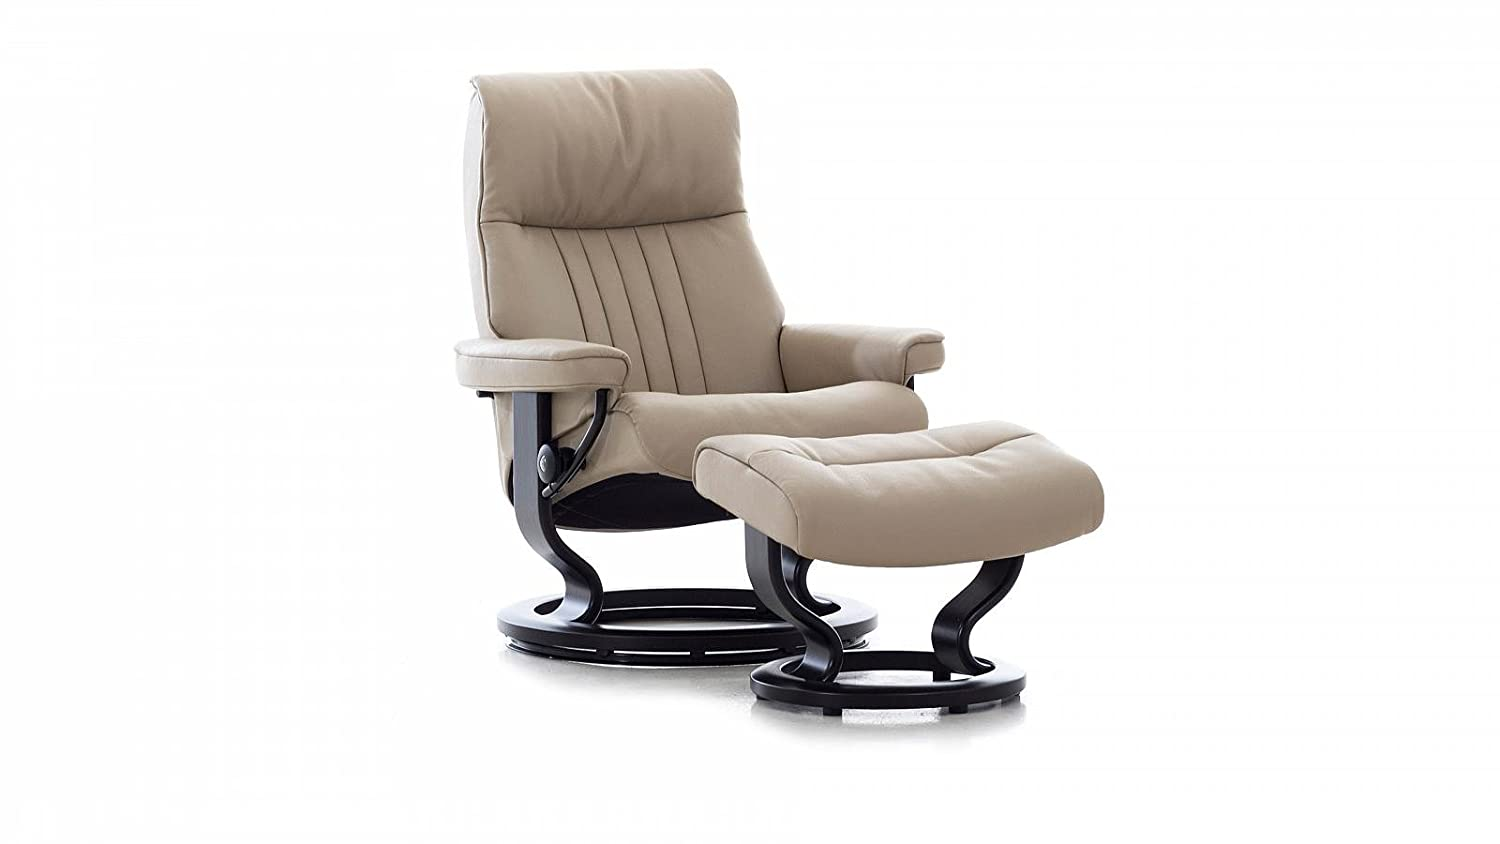 Stressless® Crown Sessel mit Hocker (M) Beige günstig günstig